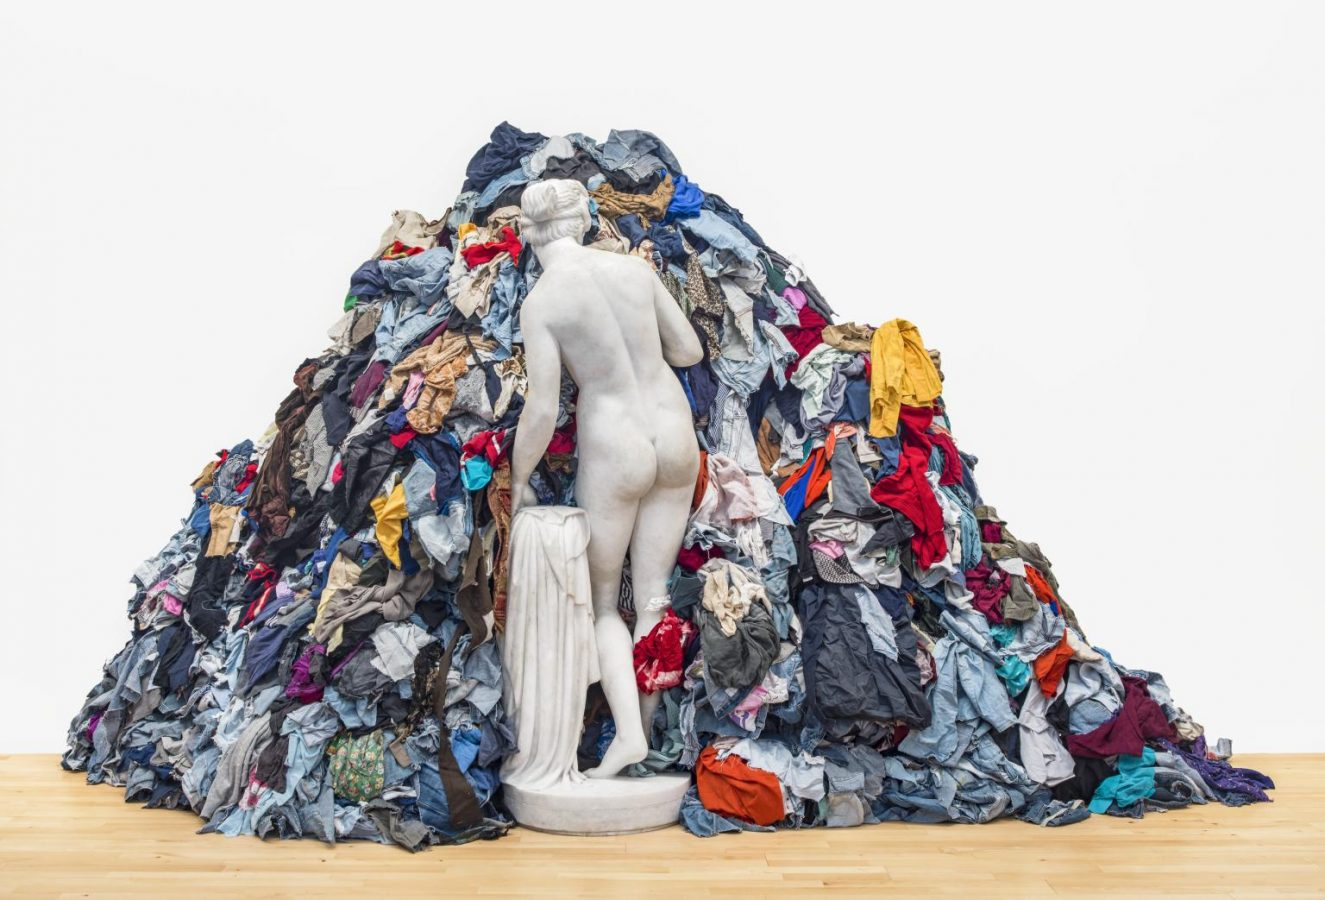 Michelangelo Pistoletto, Venus of the rags, 1967, Tate Modern. Source: Tate.